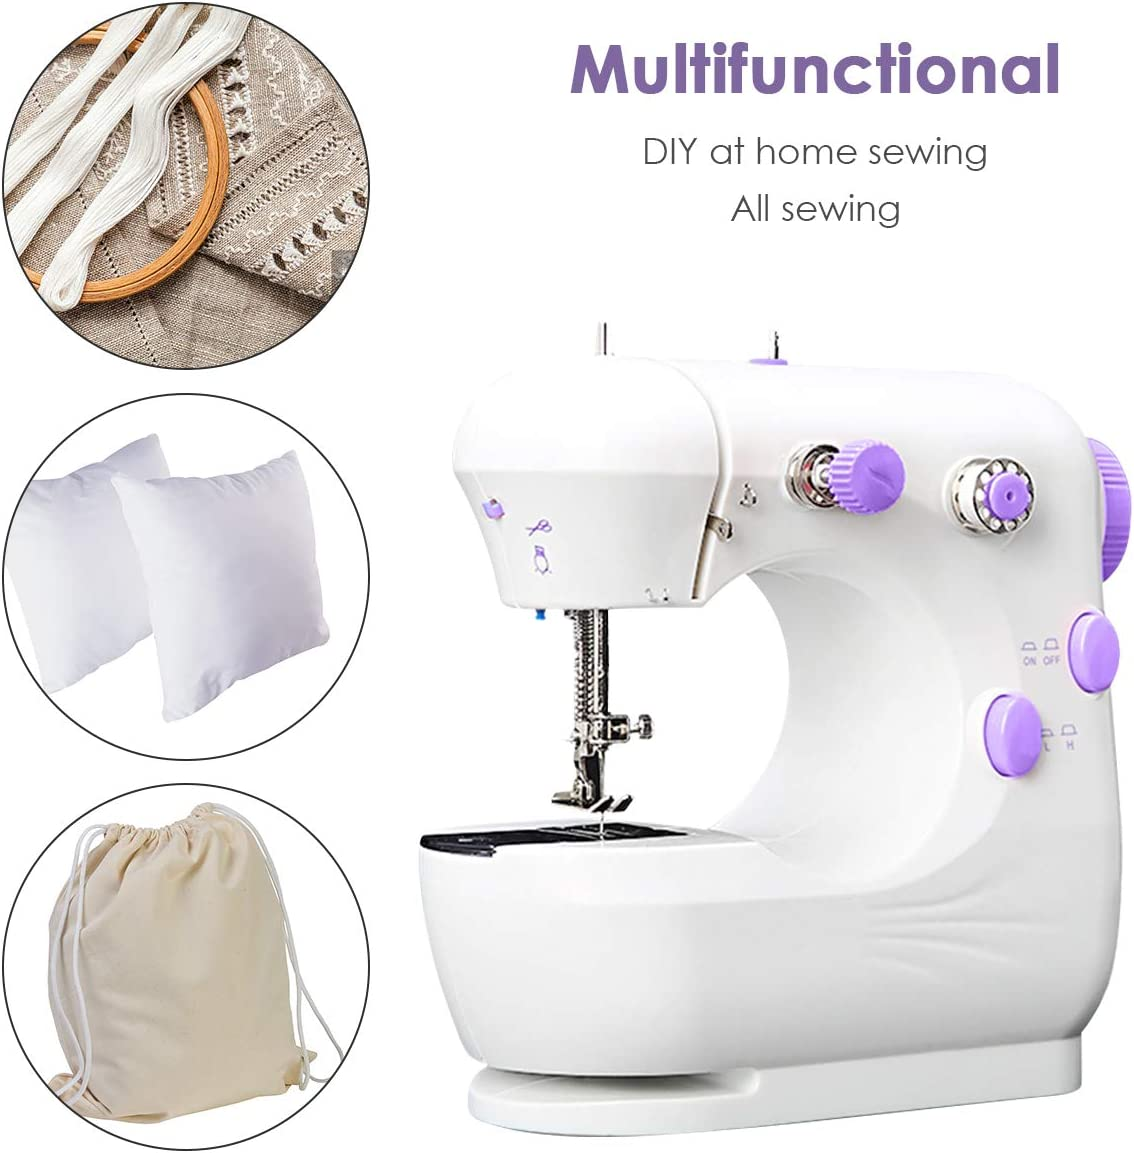 SOONHUA Mini Sewing Machine Electric Sewing Machine Multi-Function Portable Crafting Sewing Machine with Foot Pedal Adjustable 2-Speed for Home Sewing